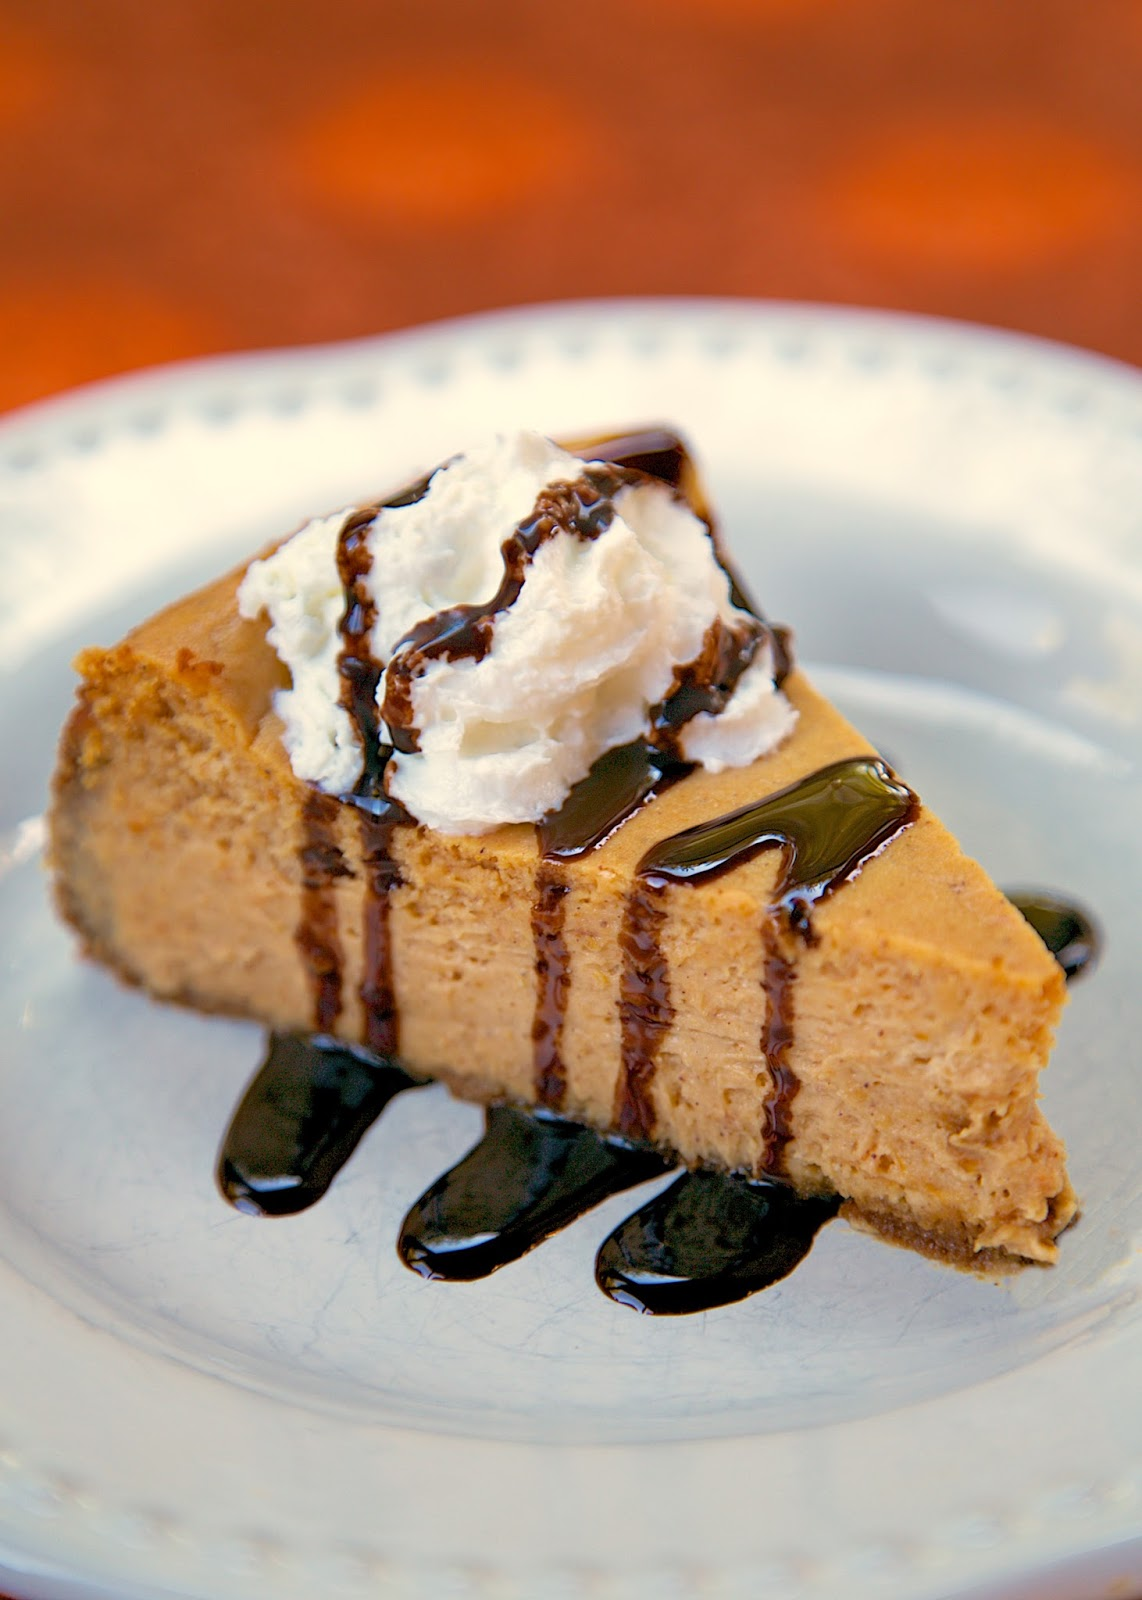 Disneyland's Pumpkin Cheesecake